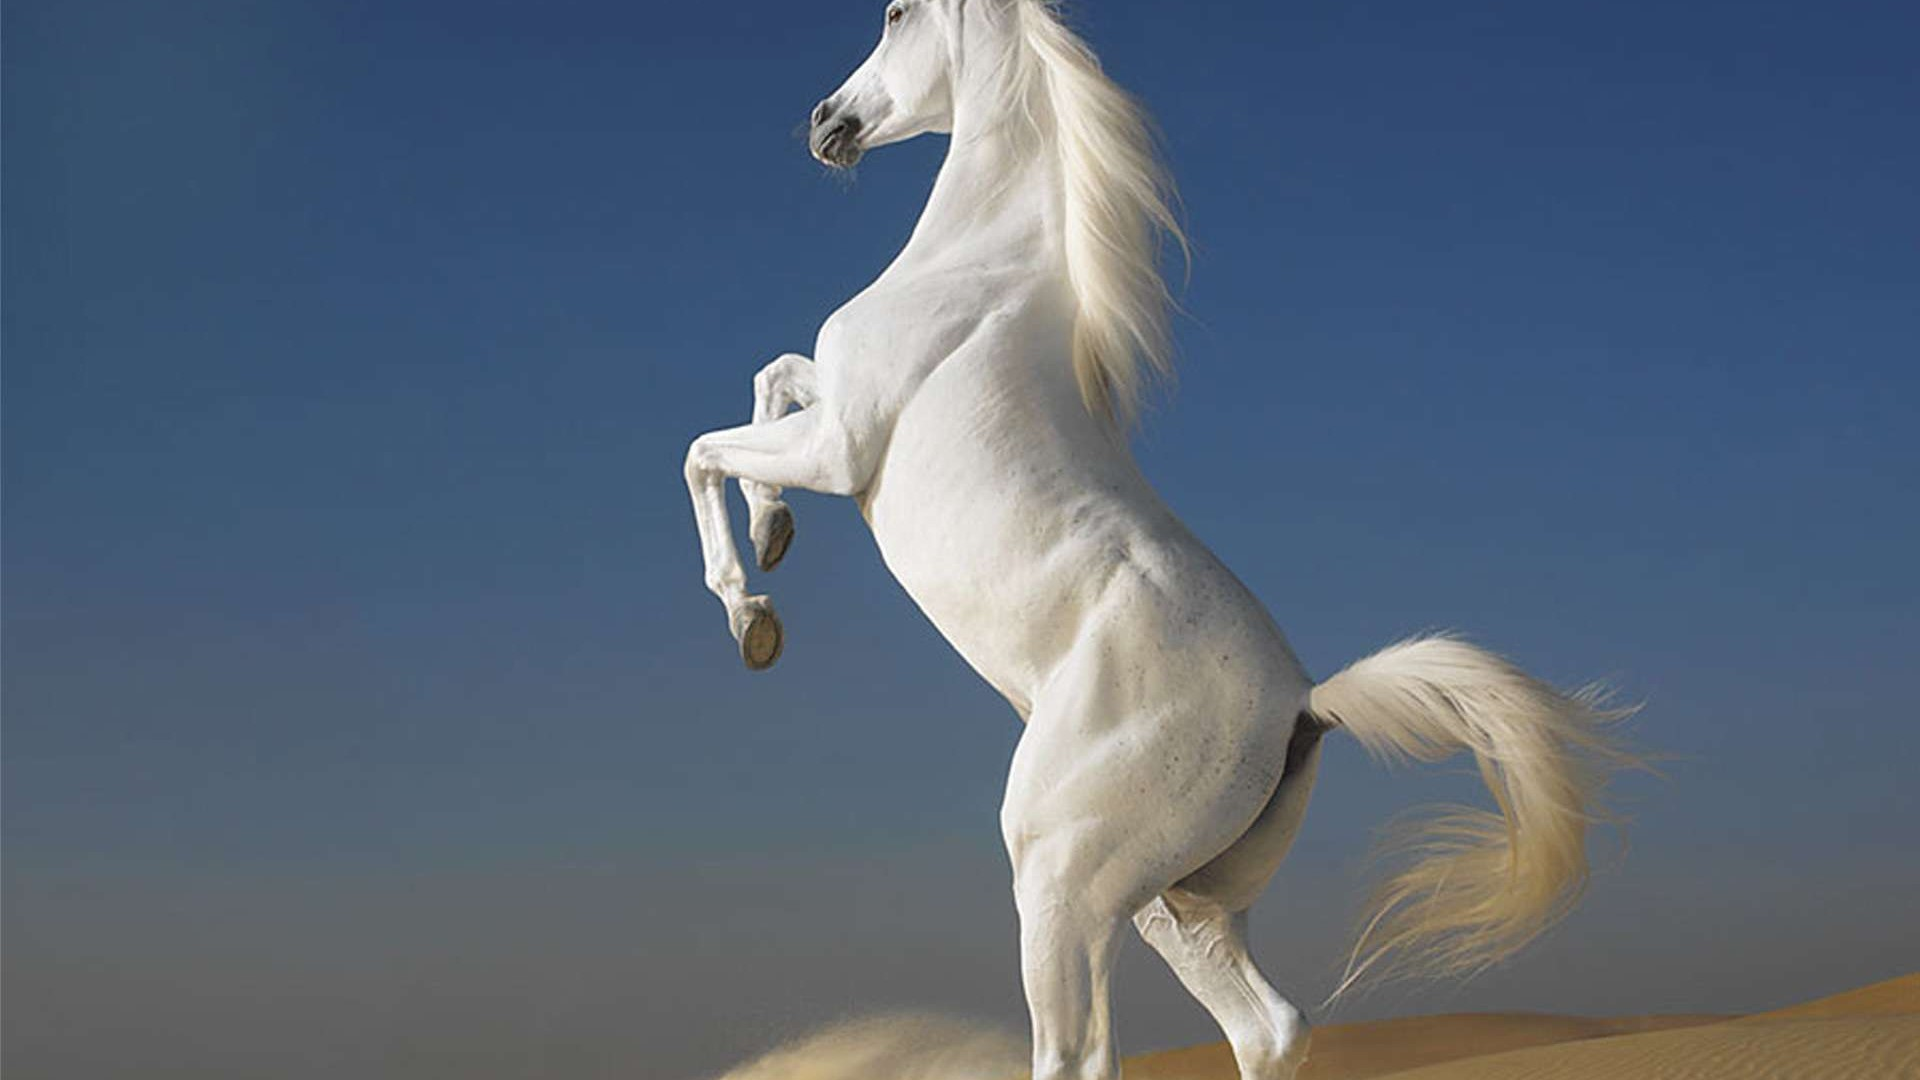 Download · Beautiful Horse Wallpaper